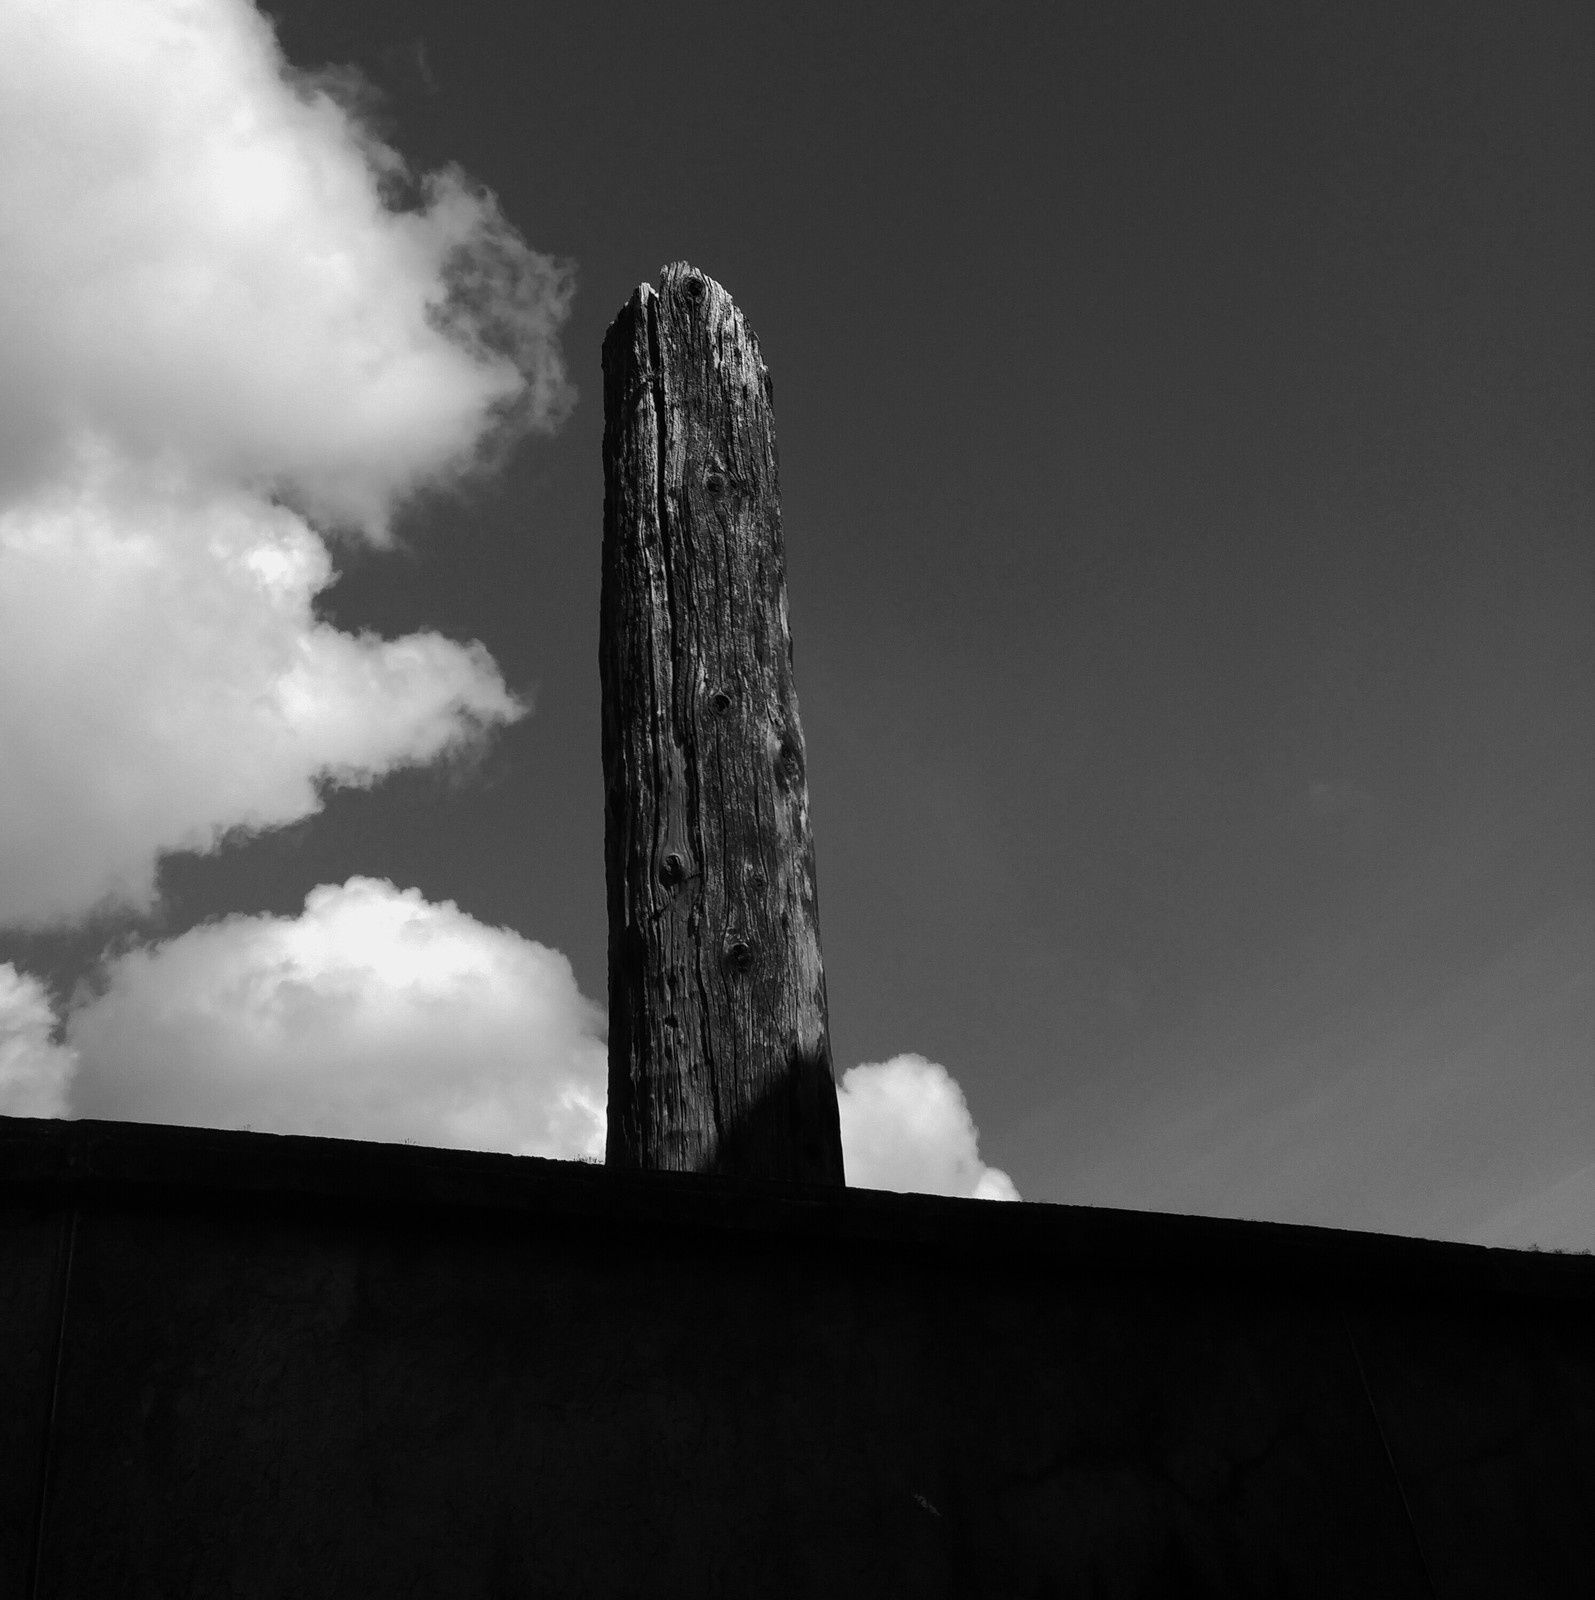 Wooden pole in black and white - June, 12th 2016 © Anne Errelis-Phillips